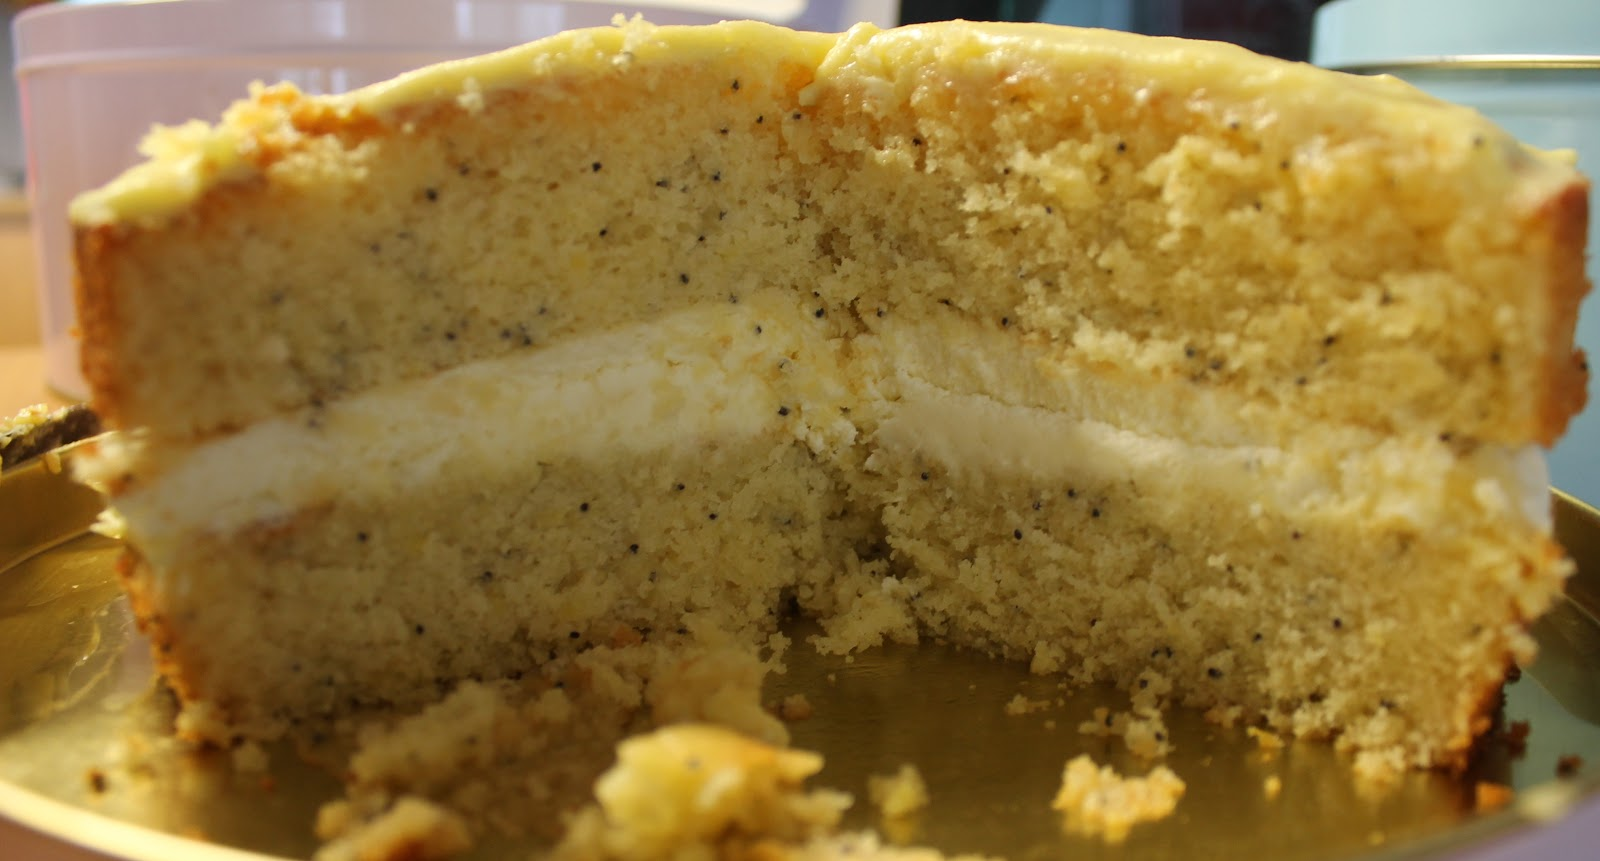 Lemon and poppyseed cake with lemon mascarpone icing